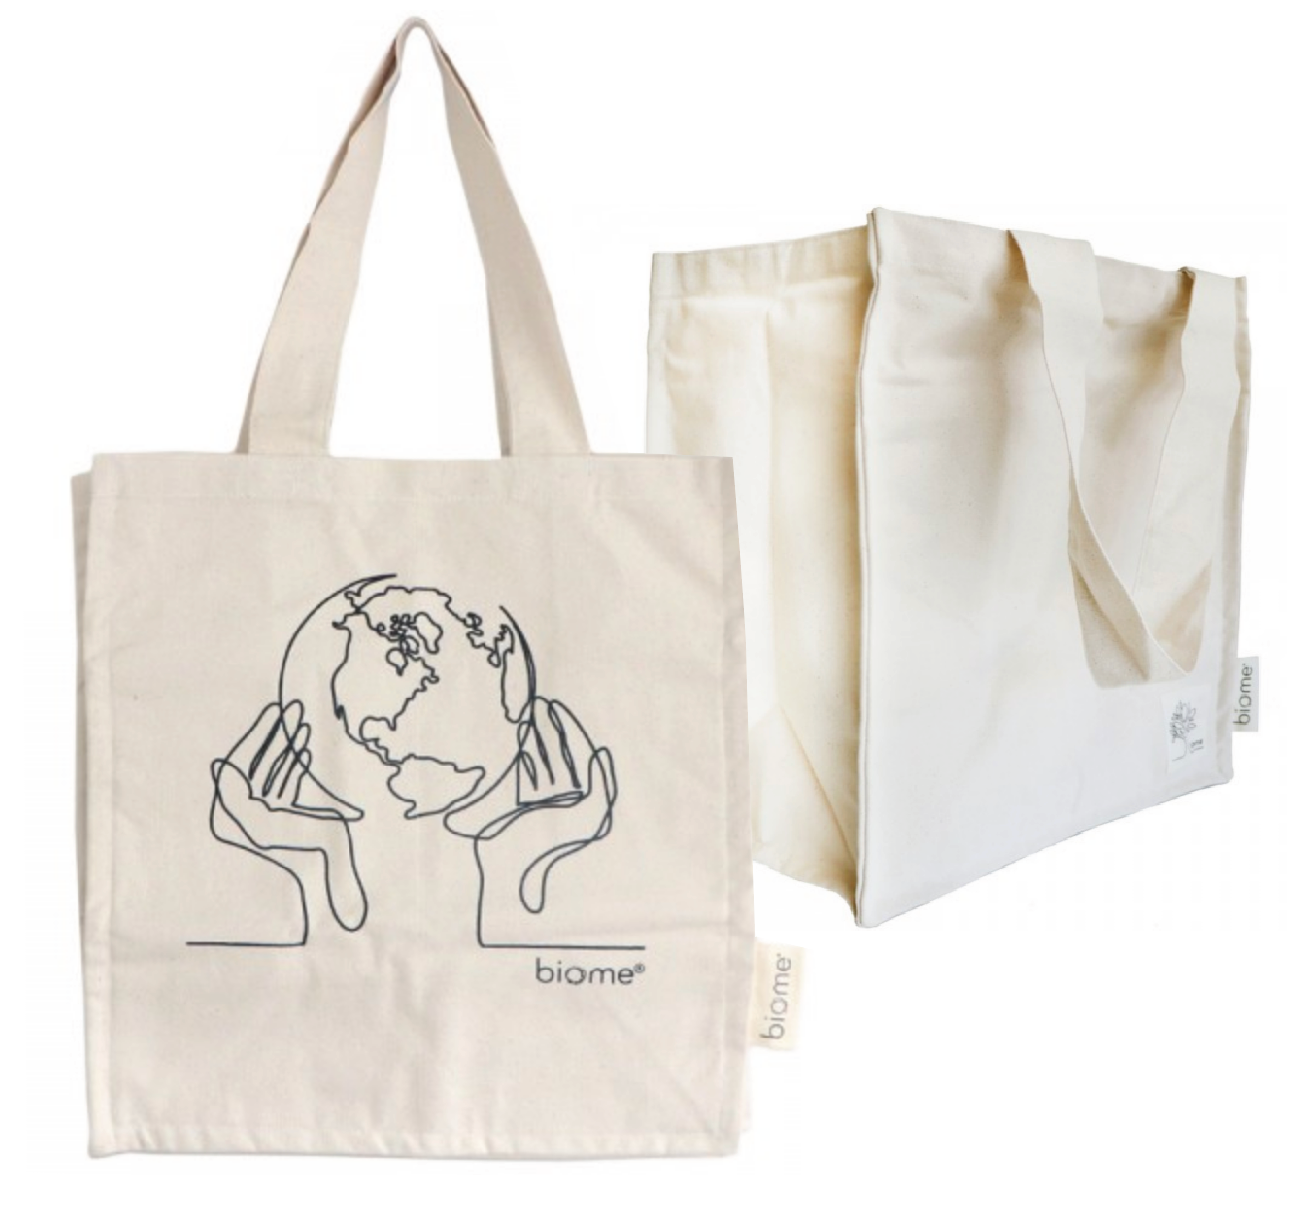 Biome - Organic cotton canvas tote bag - 'World in Our Hands'